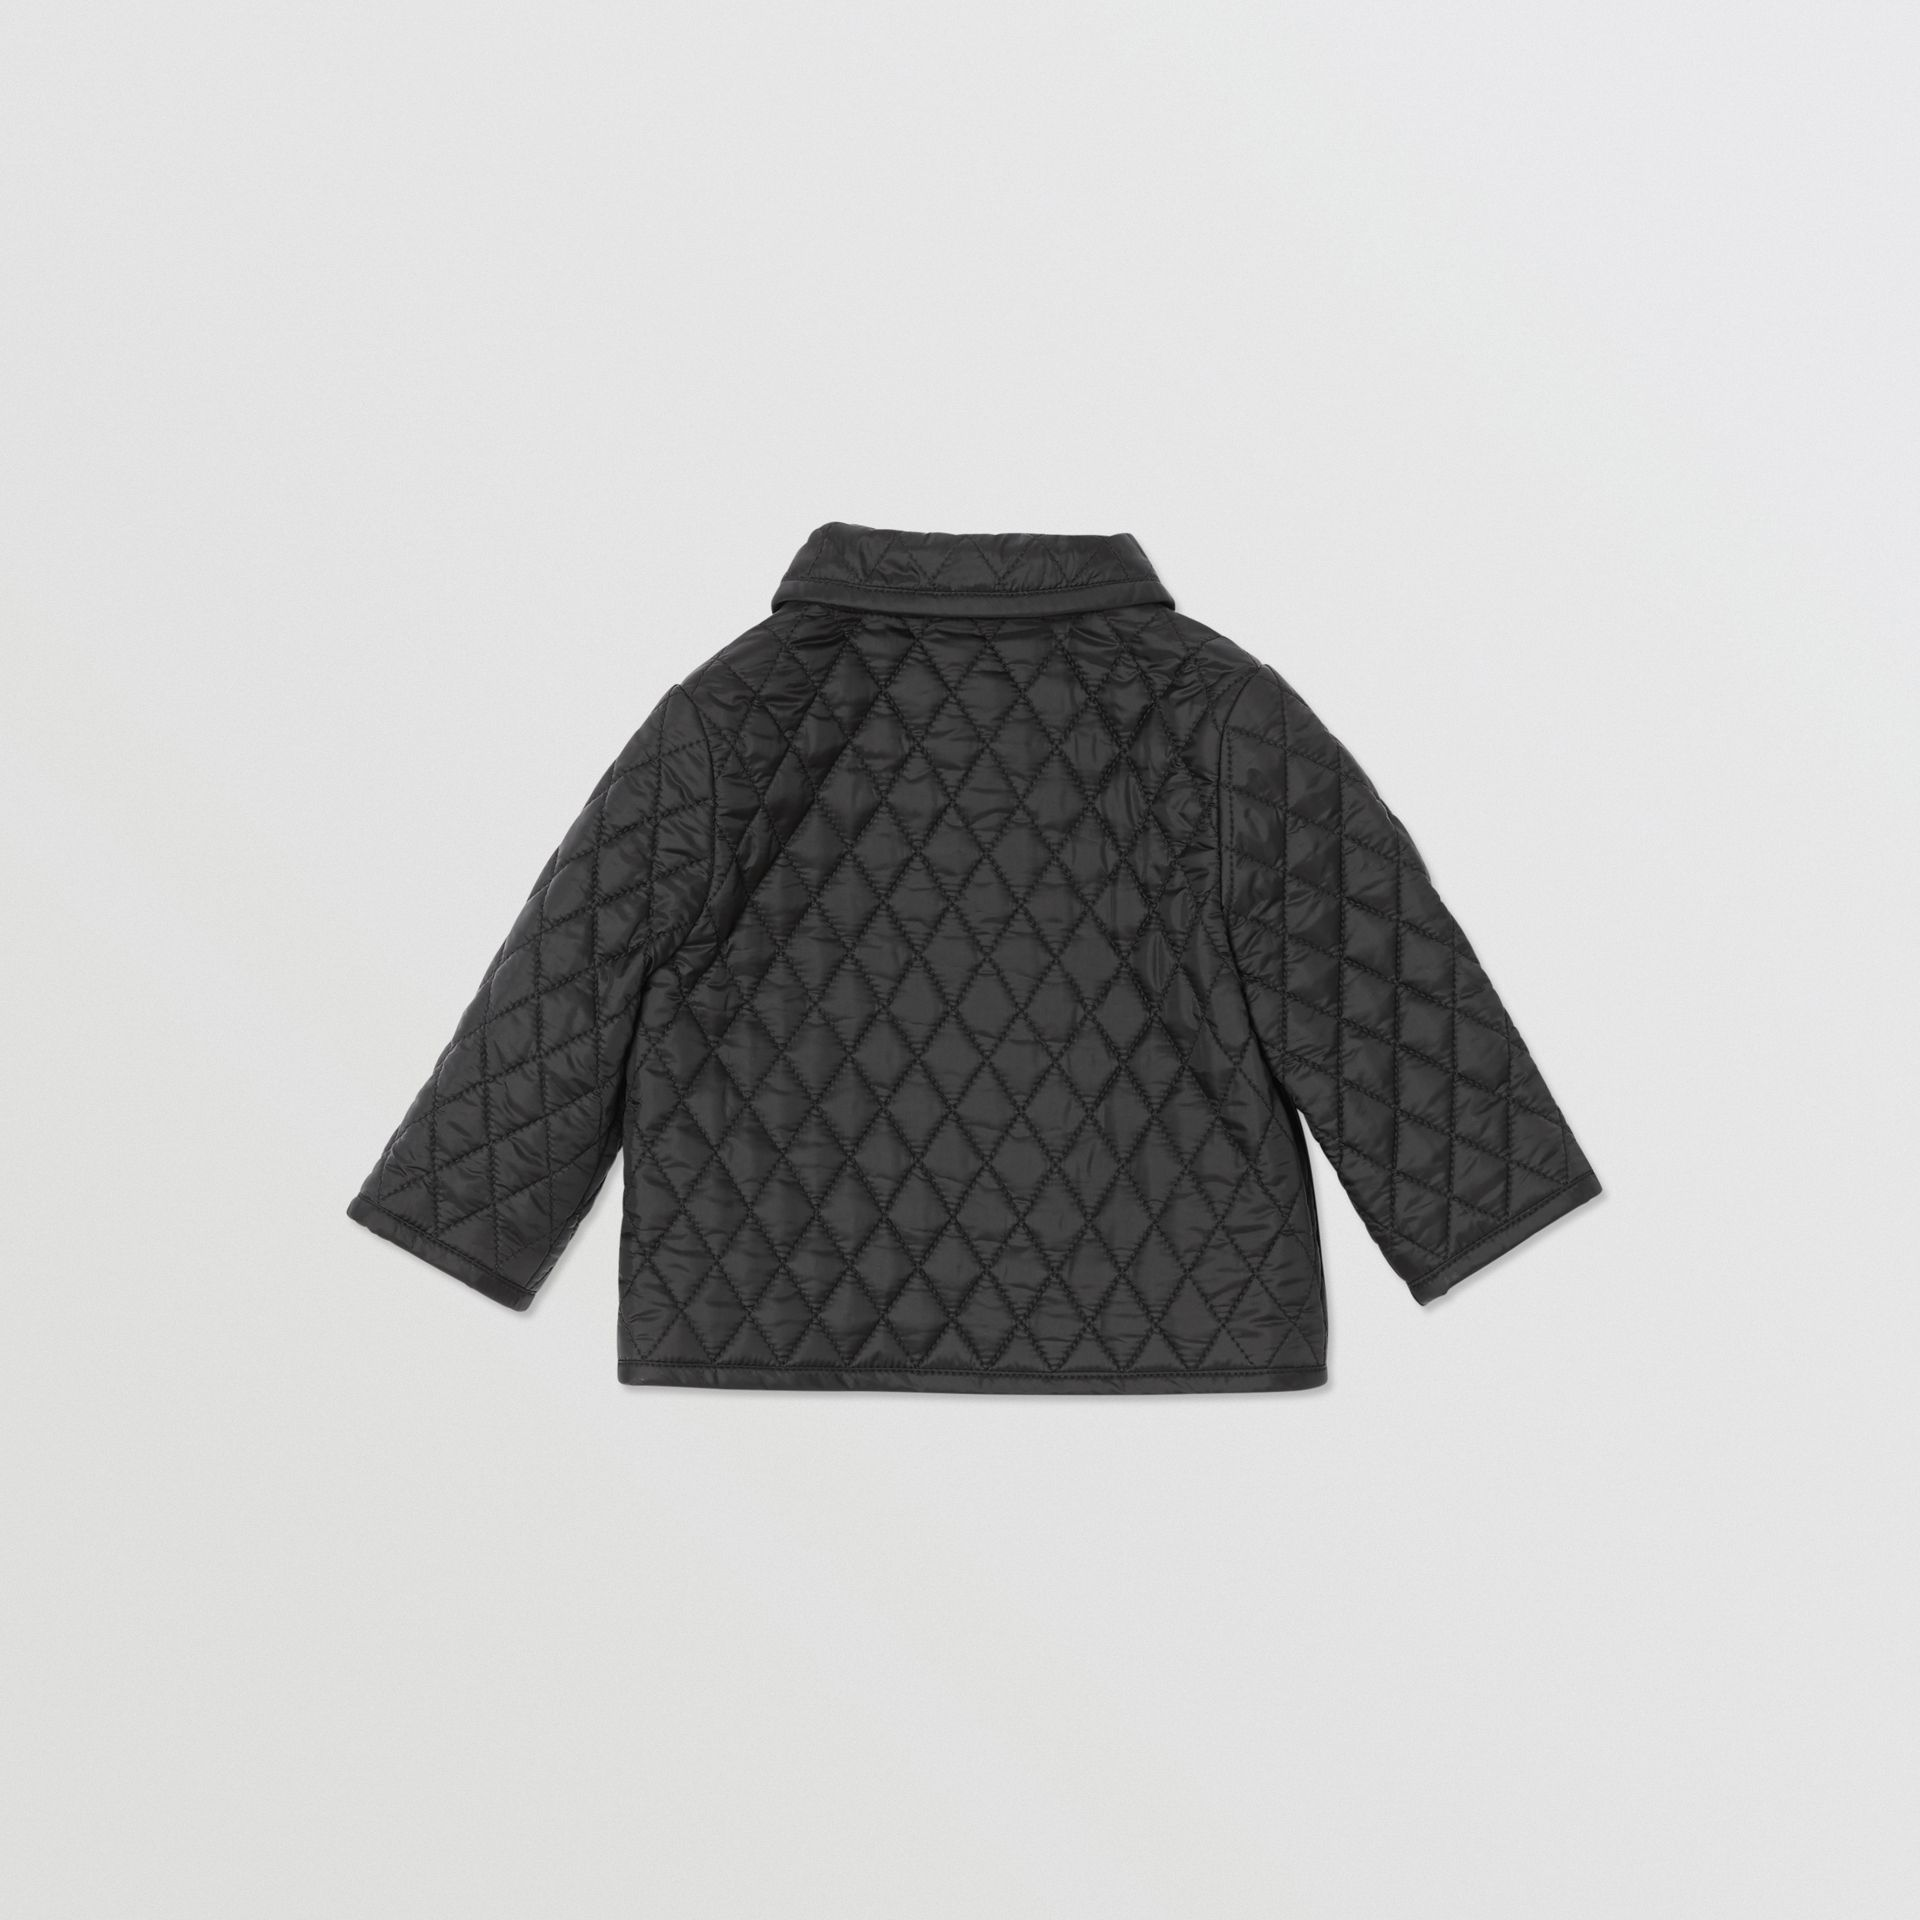 Showerproof Diamond Quilted Jacket in Black - Children | Burberry United States - gallery image 4